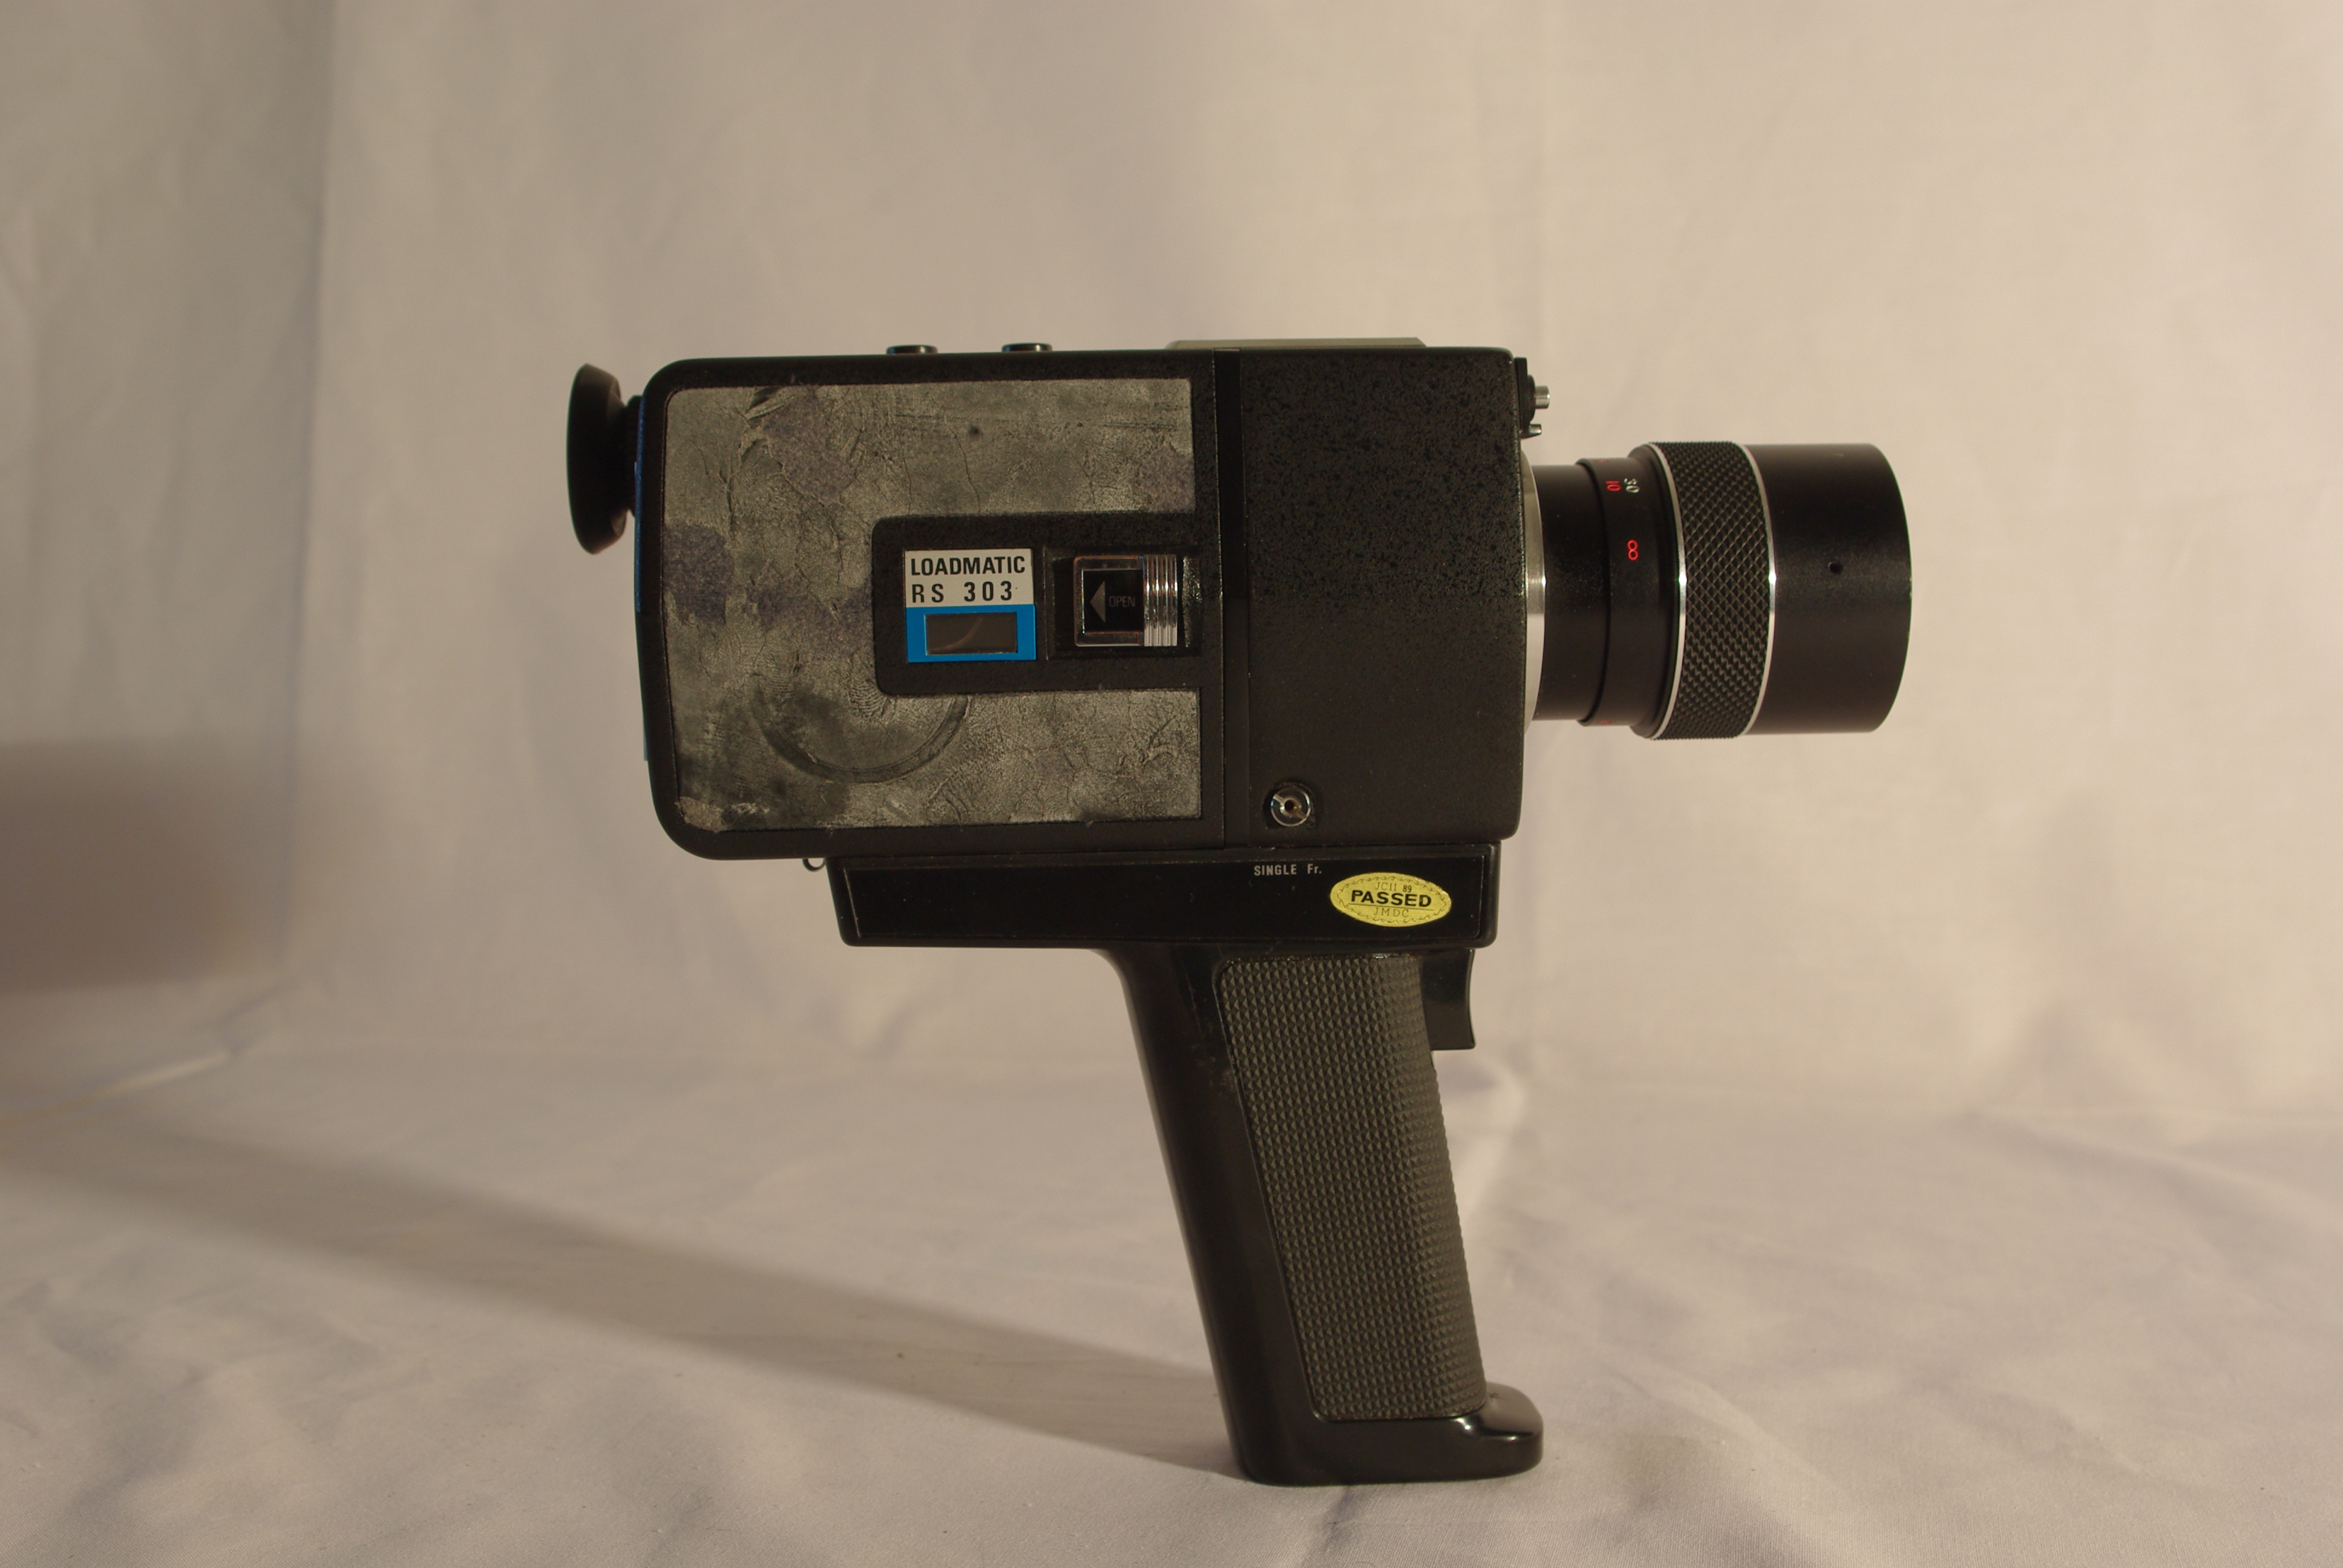 File:Rony Super 8 film camera (1) JPG - Wikimedia Commons